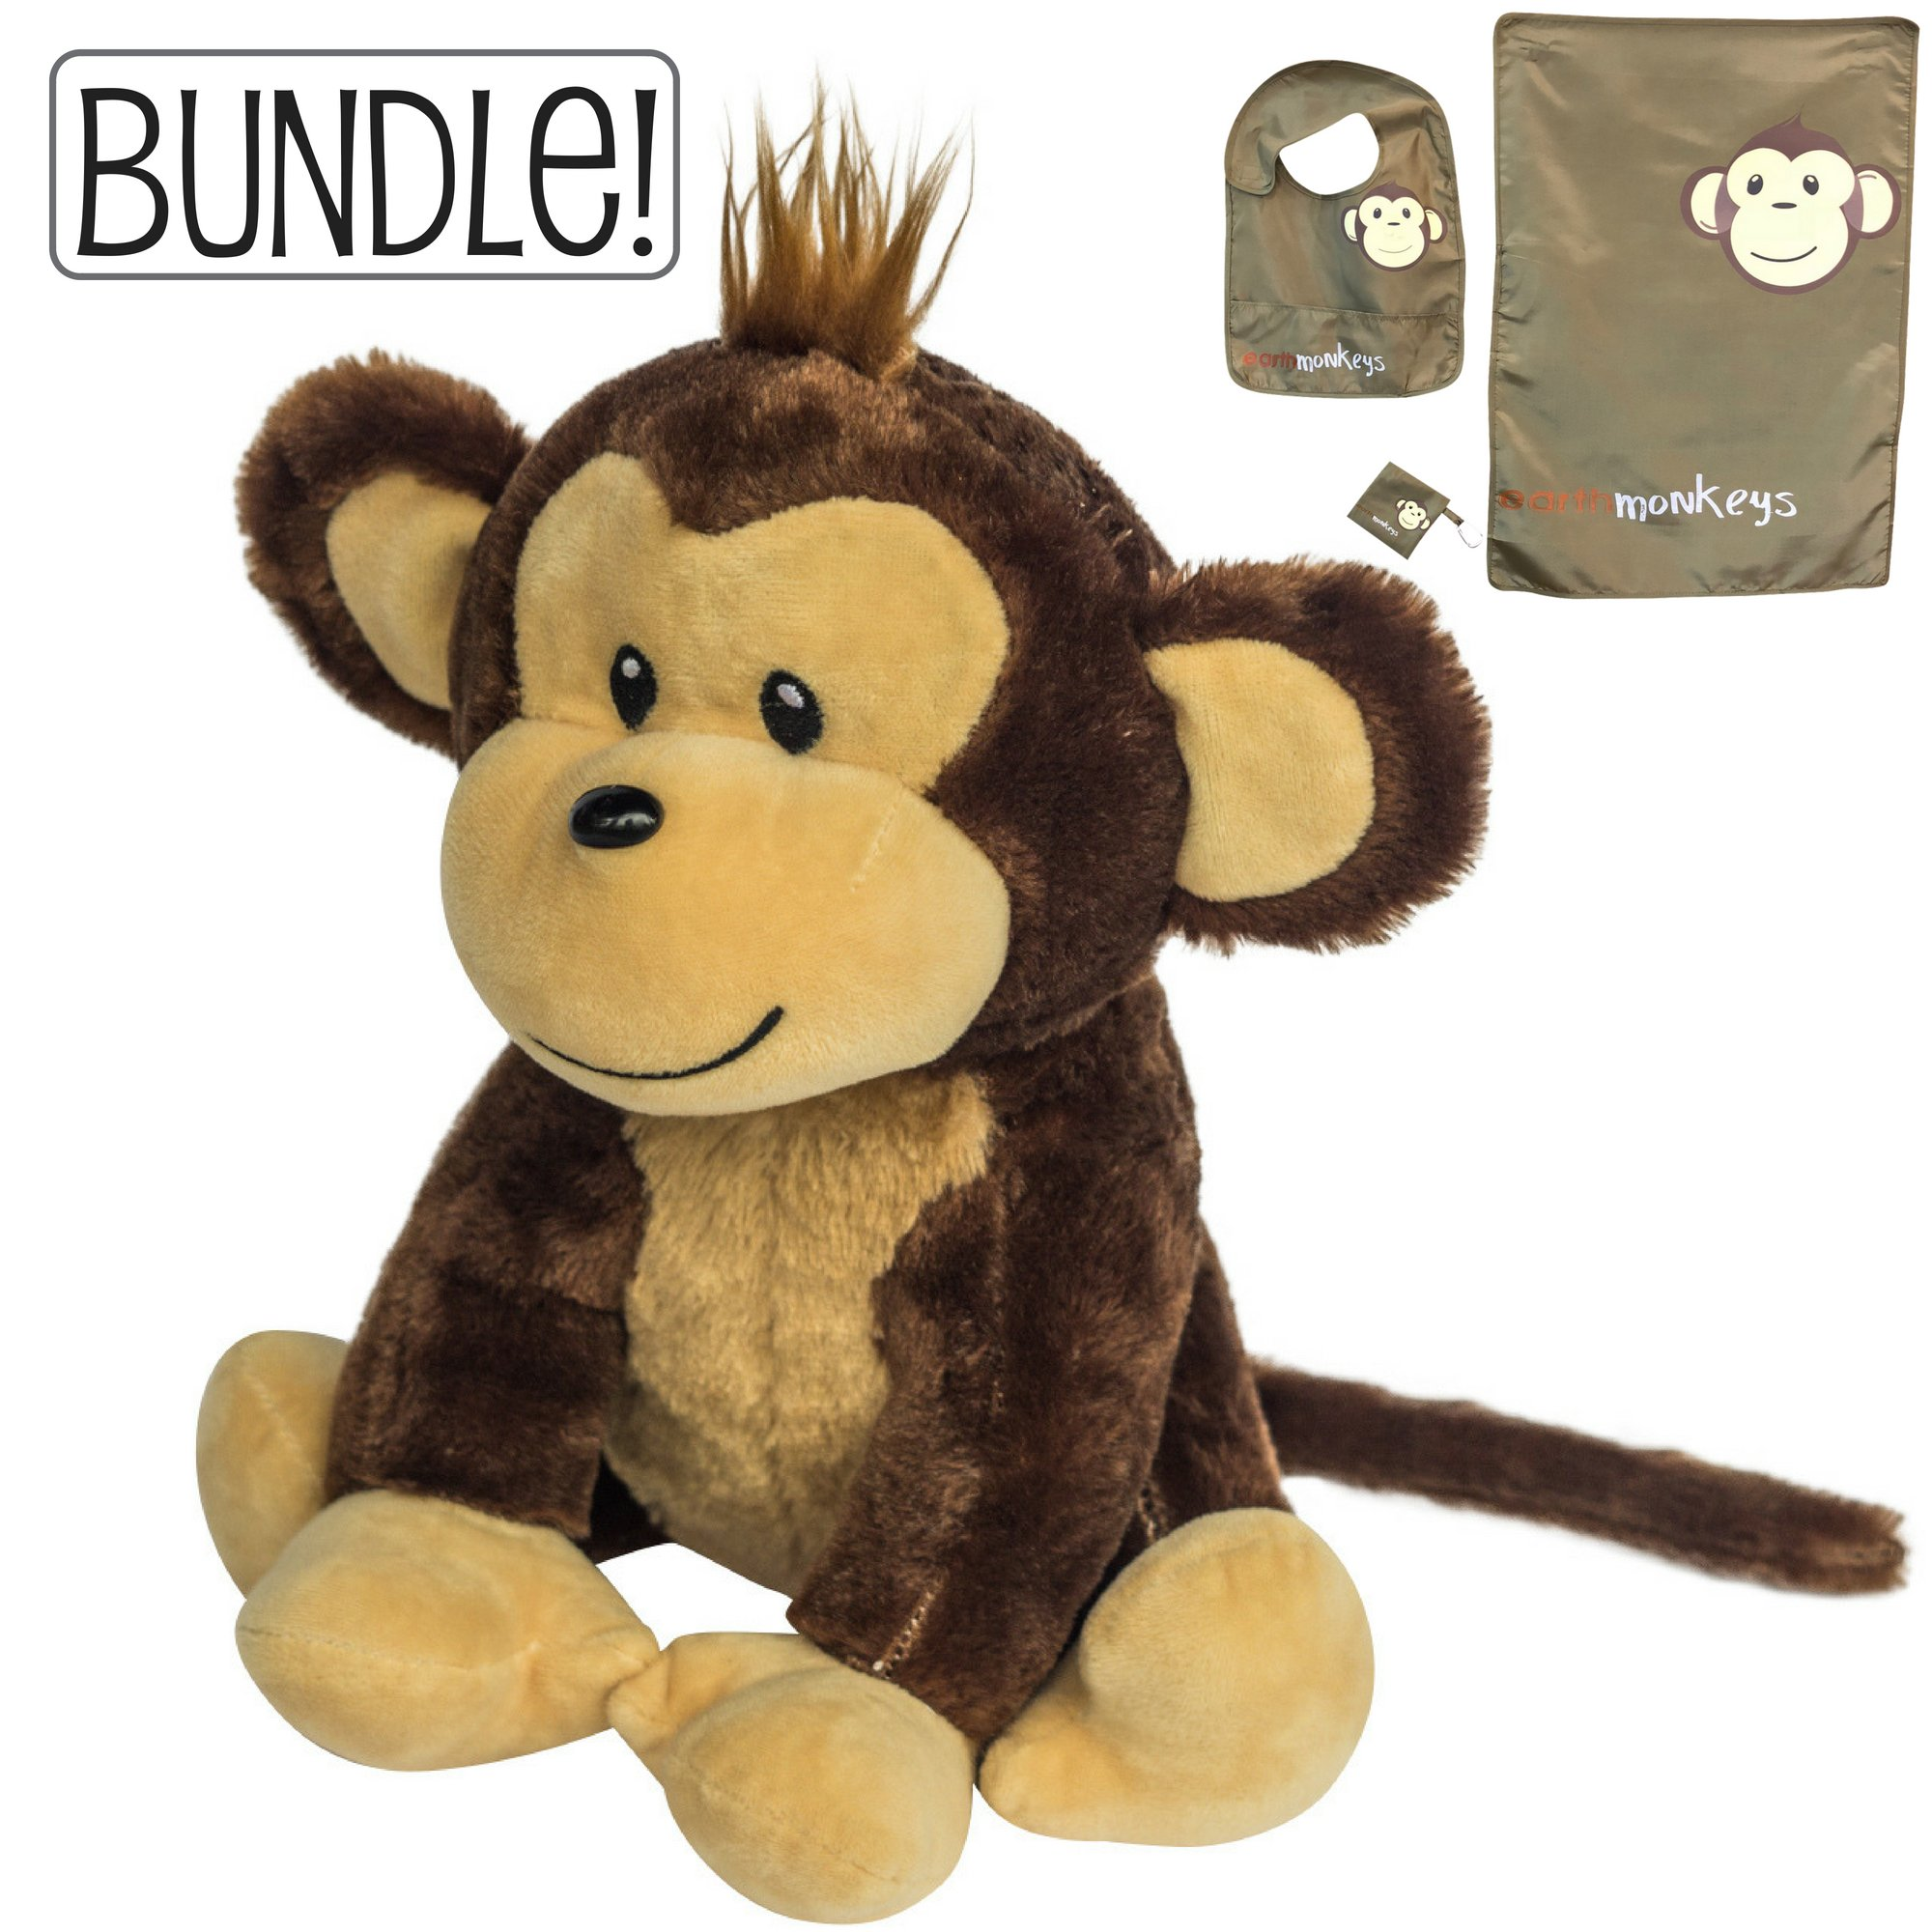 Stuffed Monkey Plush Animal | Includes Free Bib Set (Baby bib, Changing pad and Pacifier Holder)! Great Gift for Any Registry or Baby Shower! New and Expecting Mom's Will Love This!